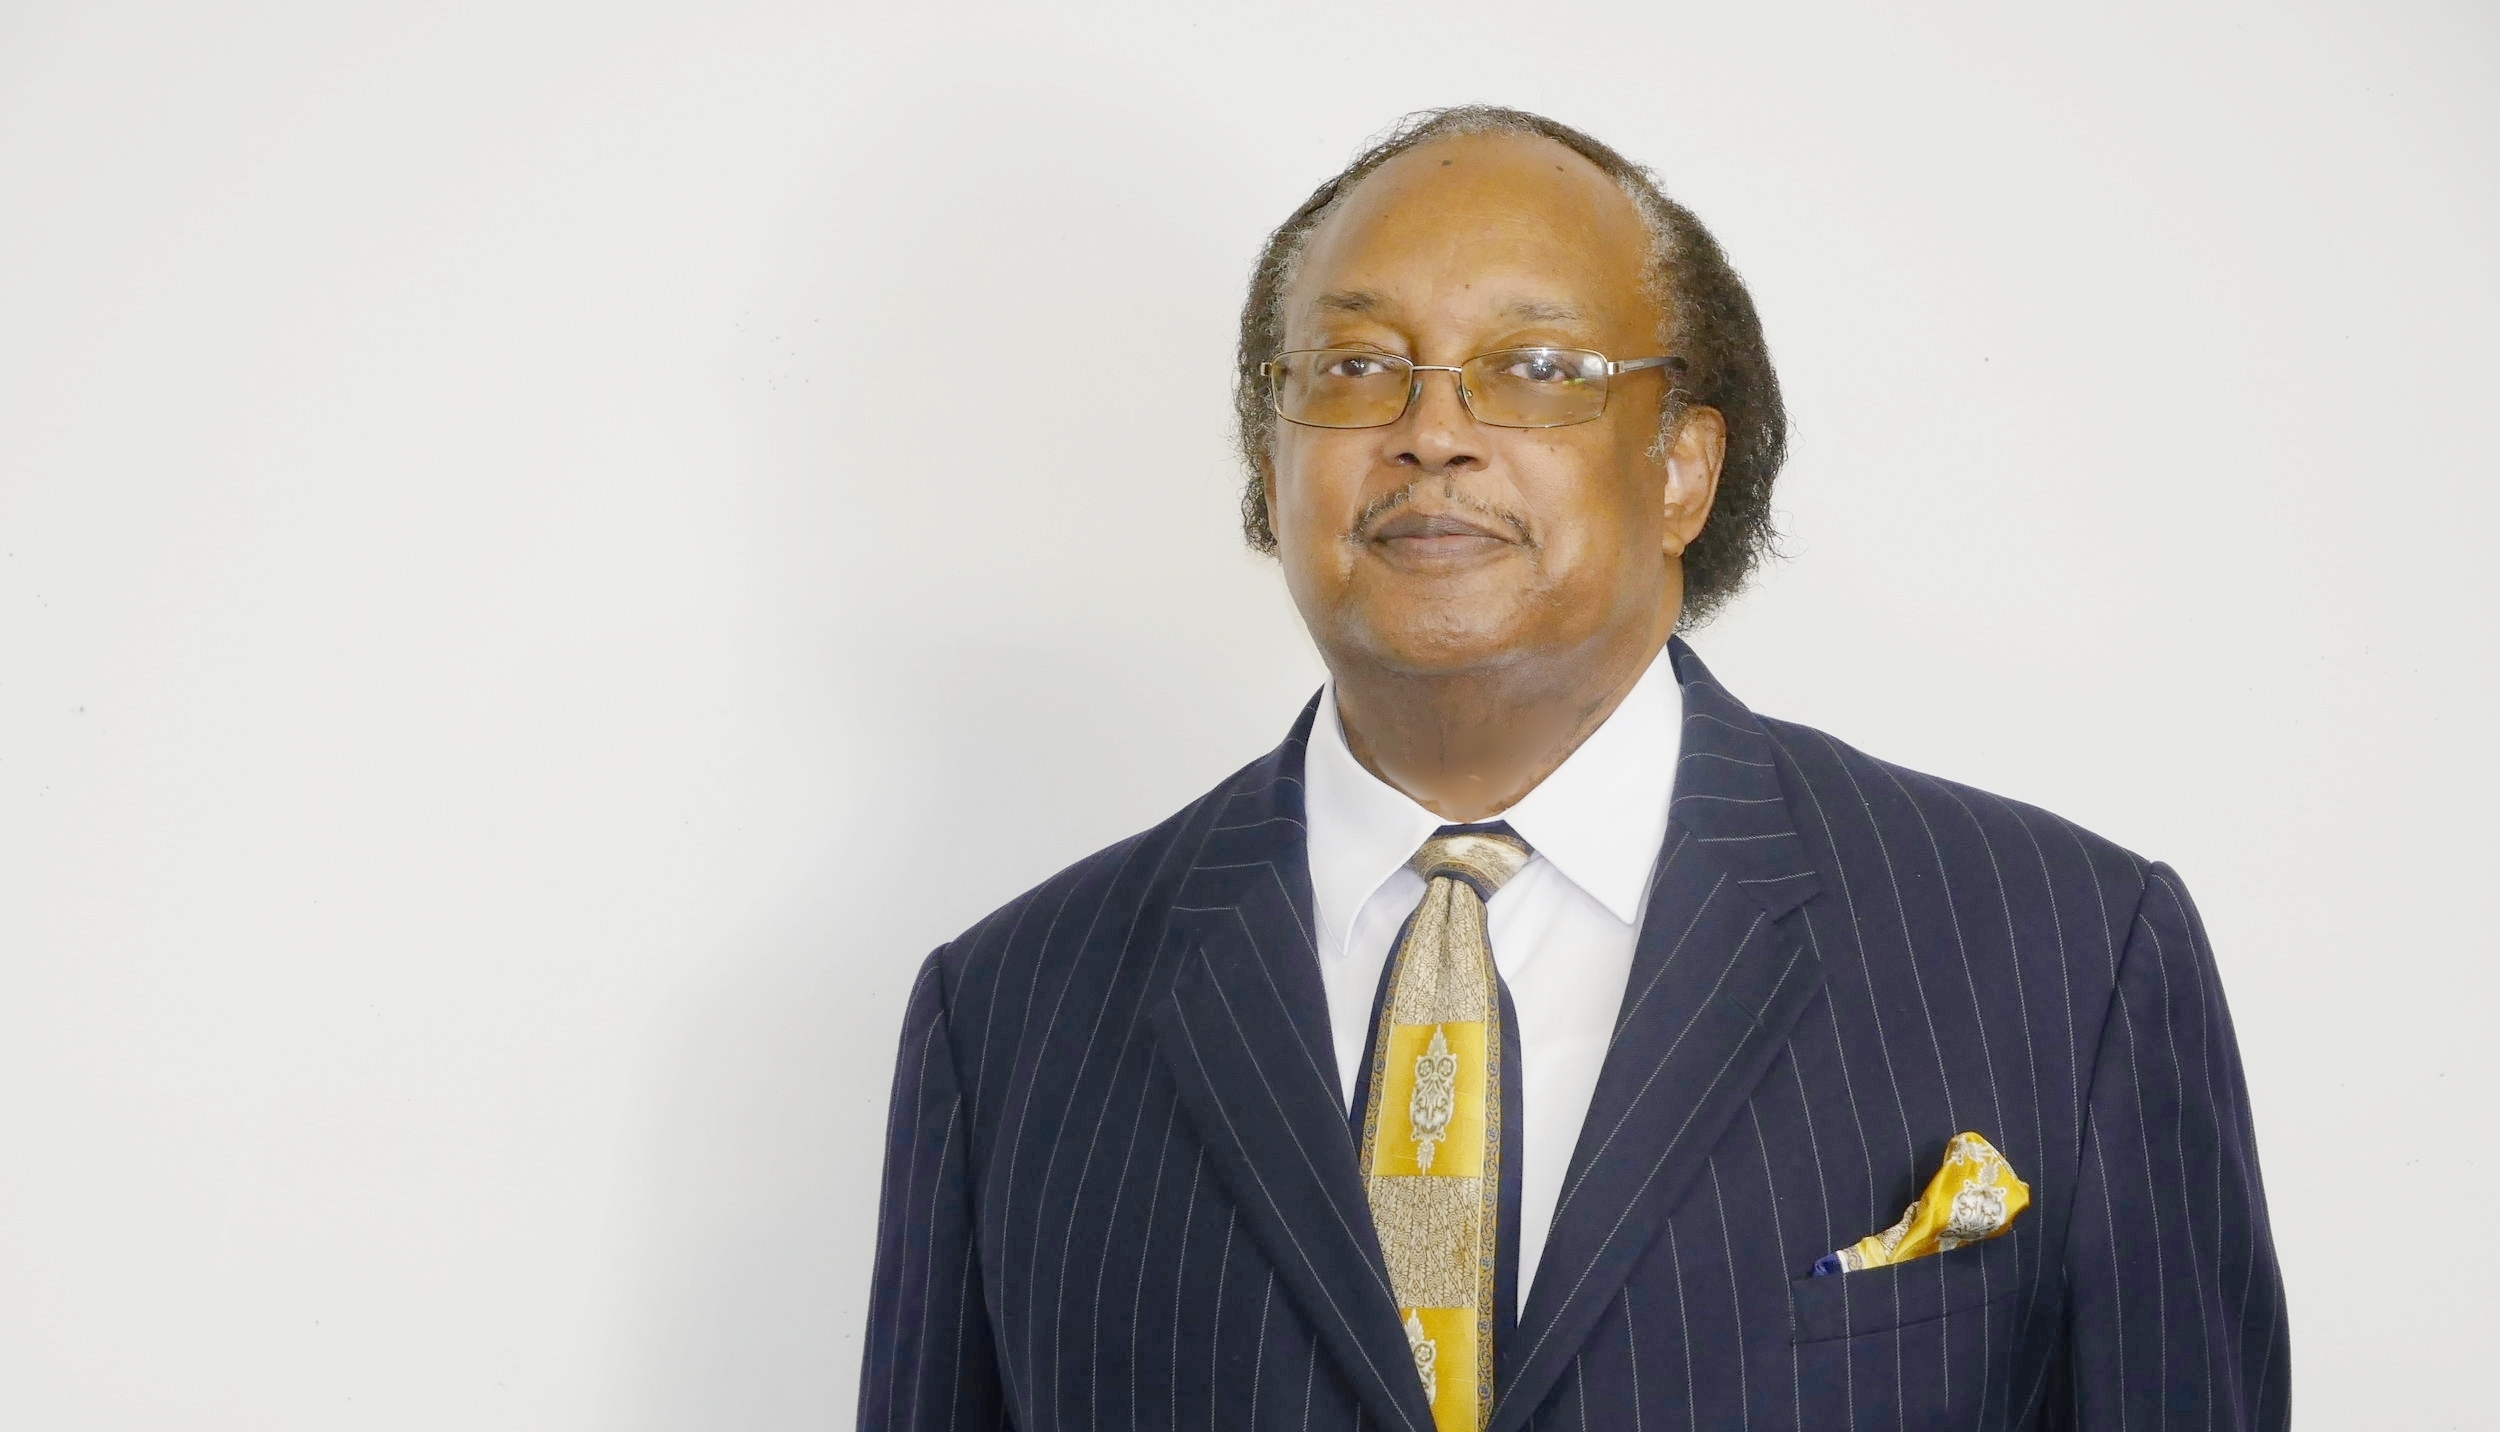 Atty. Dr. Edward A. Robinson - Attorney of CounselEducationRUTGERS LAW SCHOOLJuris Doctor, 1975YALE, UNIVERSITY OF MICHIGAN, & TEXAS A&MExchange student studiesUNIVERSITY OF NEW YORK (ALBANY)Masters degree in Criminal Justice 1971GRAMBLING STATE UNIVERSITYB.A., Political Science and English, 1970Awards & Accomplishments•First African-American 10 Most Outstanding Men of America 1978•Former Louisiana Attorney General's Office Assistant Chief of the Justice Department (youngest in the Nation at that time)•Selected as one of Louisiana's Three Most Outstanding Men 1977•Grambling State University Hall of Fame Inductee 1987•Omega Psi Phi Fraternity Inc. MemberBar Admissions• Louisiana